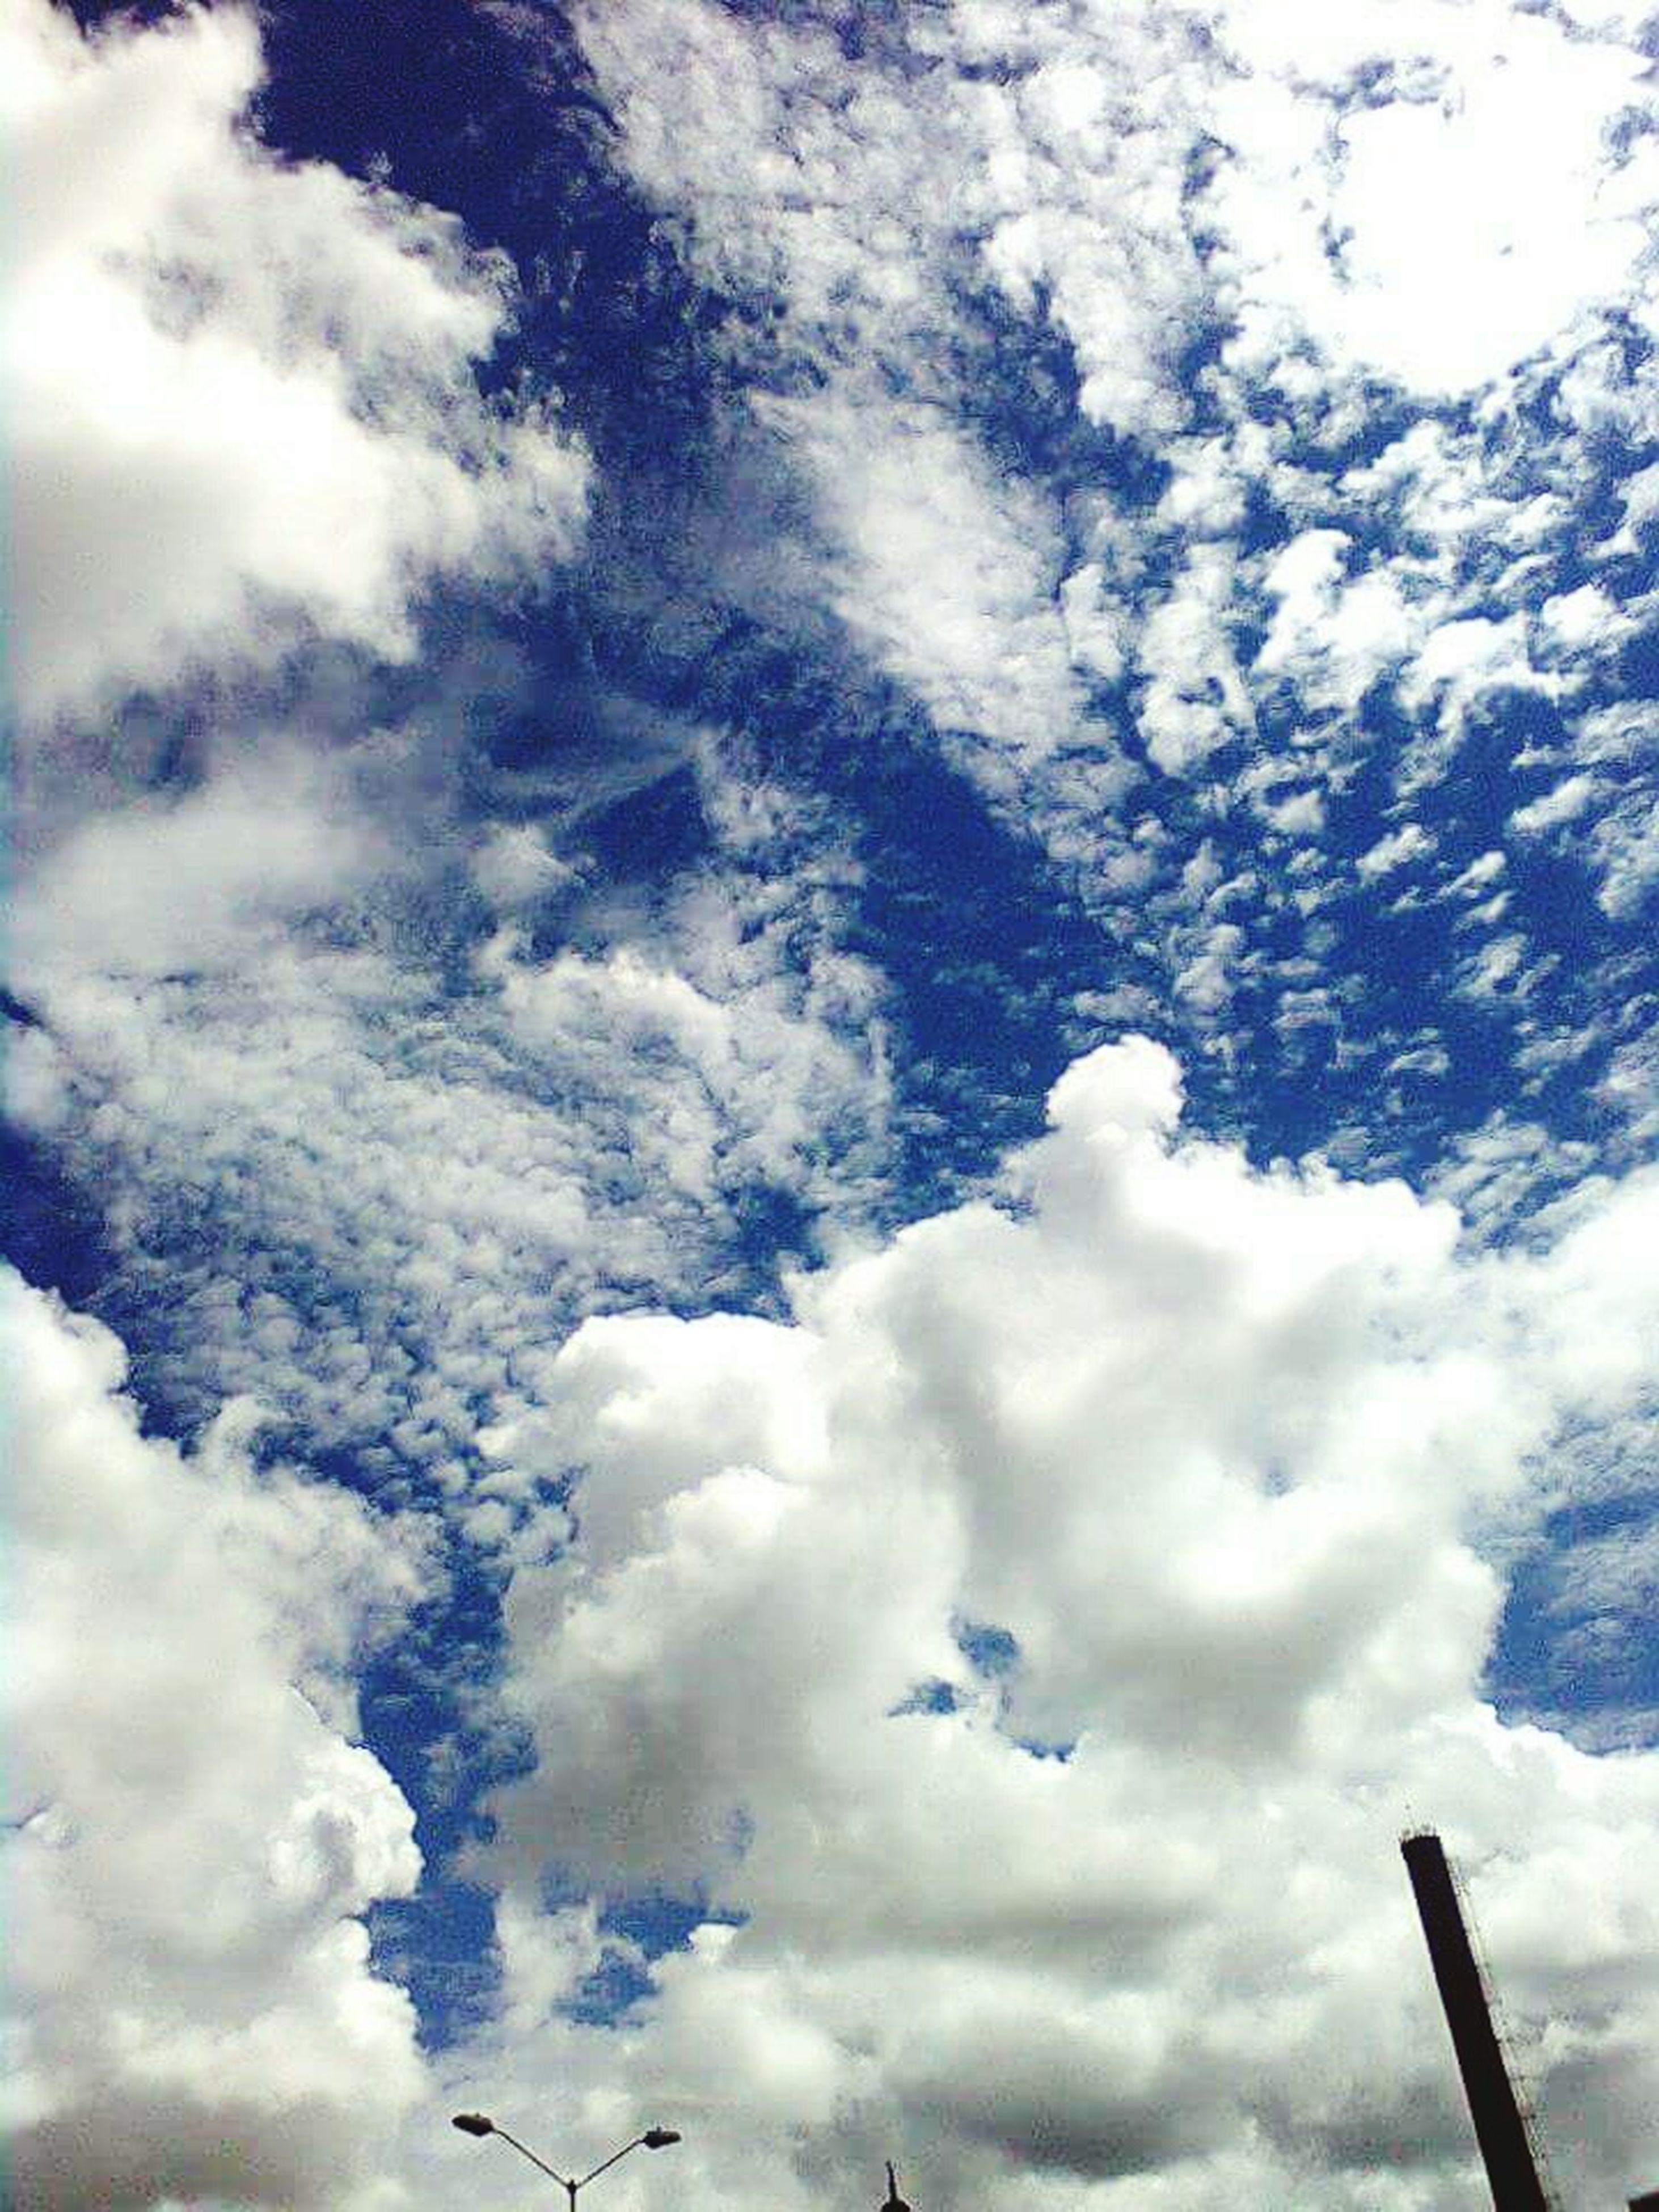 low angle view, sky, cloud - sky, cloudy, nature, cloud, beauty in nature, tranquility, blue, weather, day, scenics, cloudscape, outdoors, no people, backgrounds, tranquil scene, white color, overcast, full frame